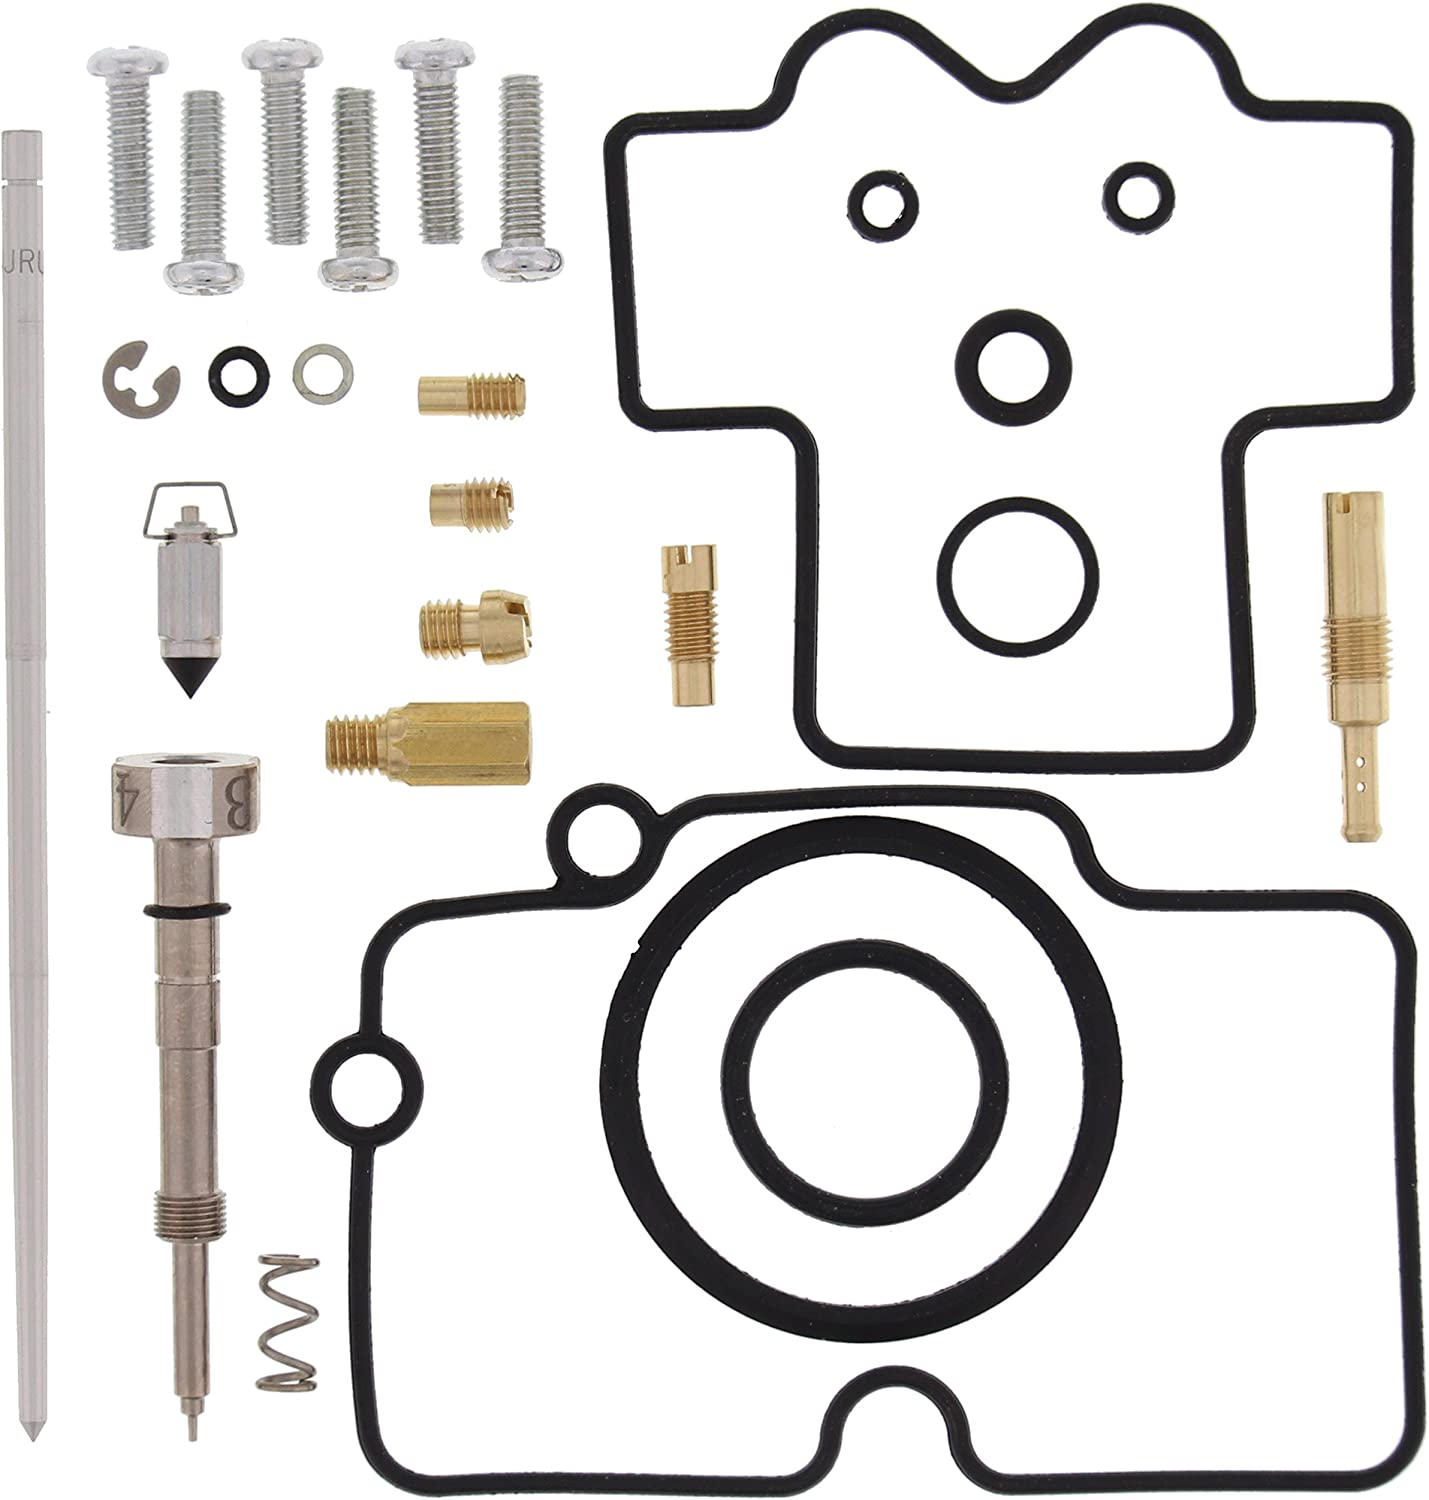 26-1299 Yamaha WR250F 2005 All Balls 26-1299 Carburetor Repair Kit